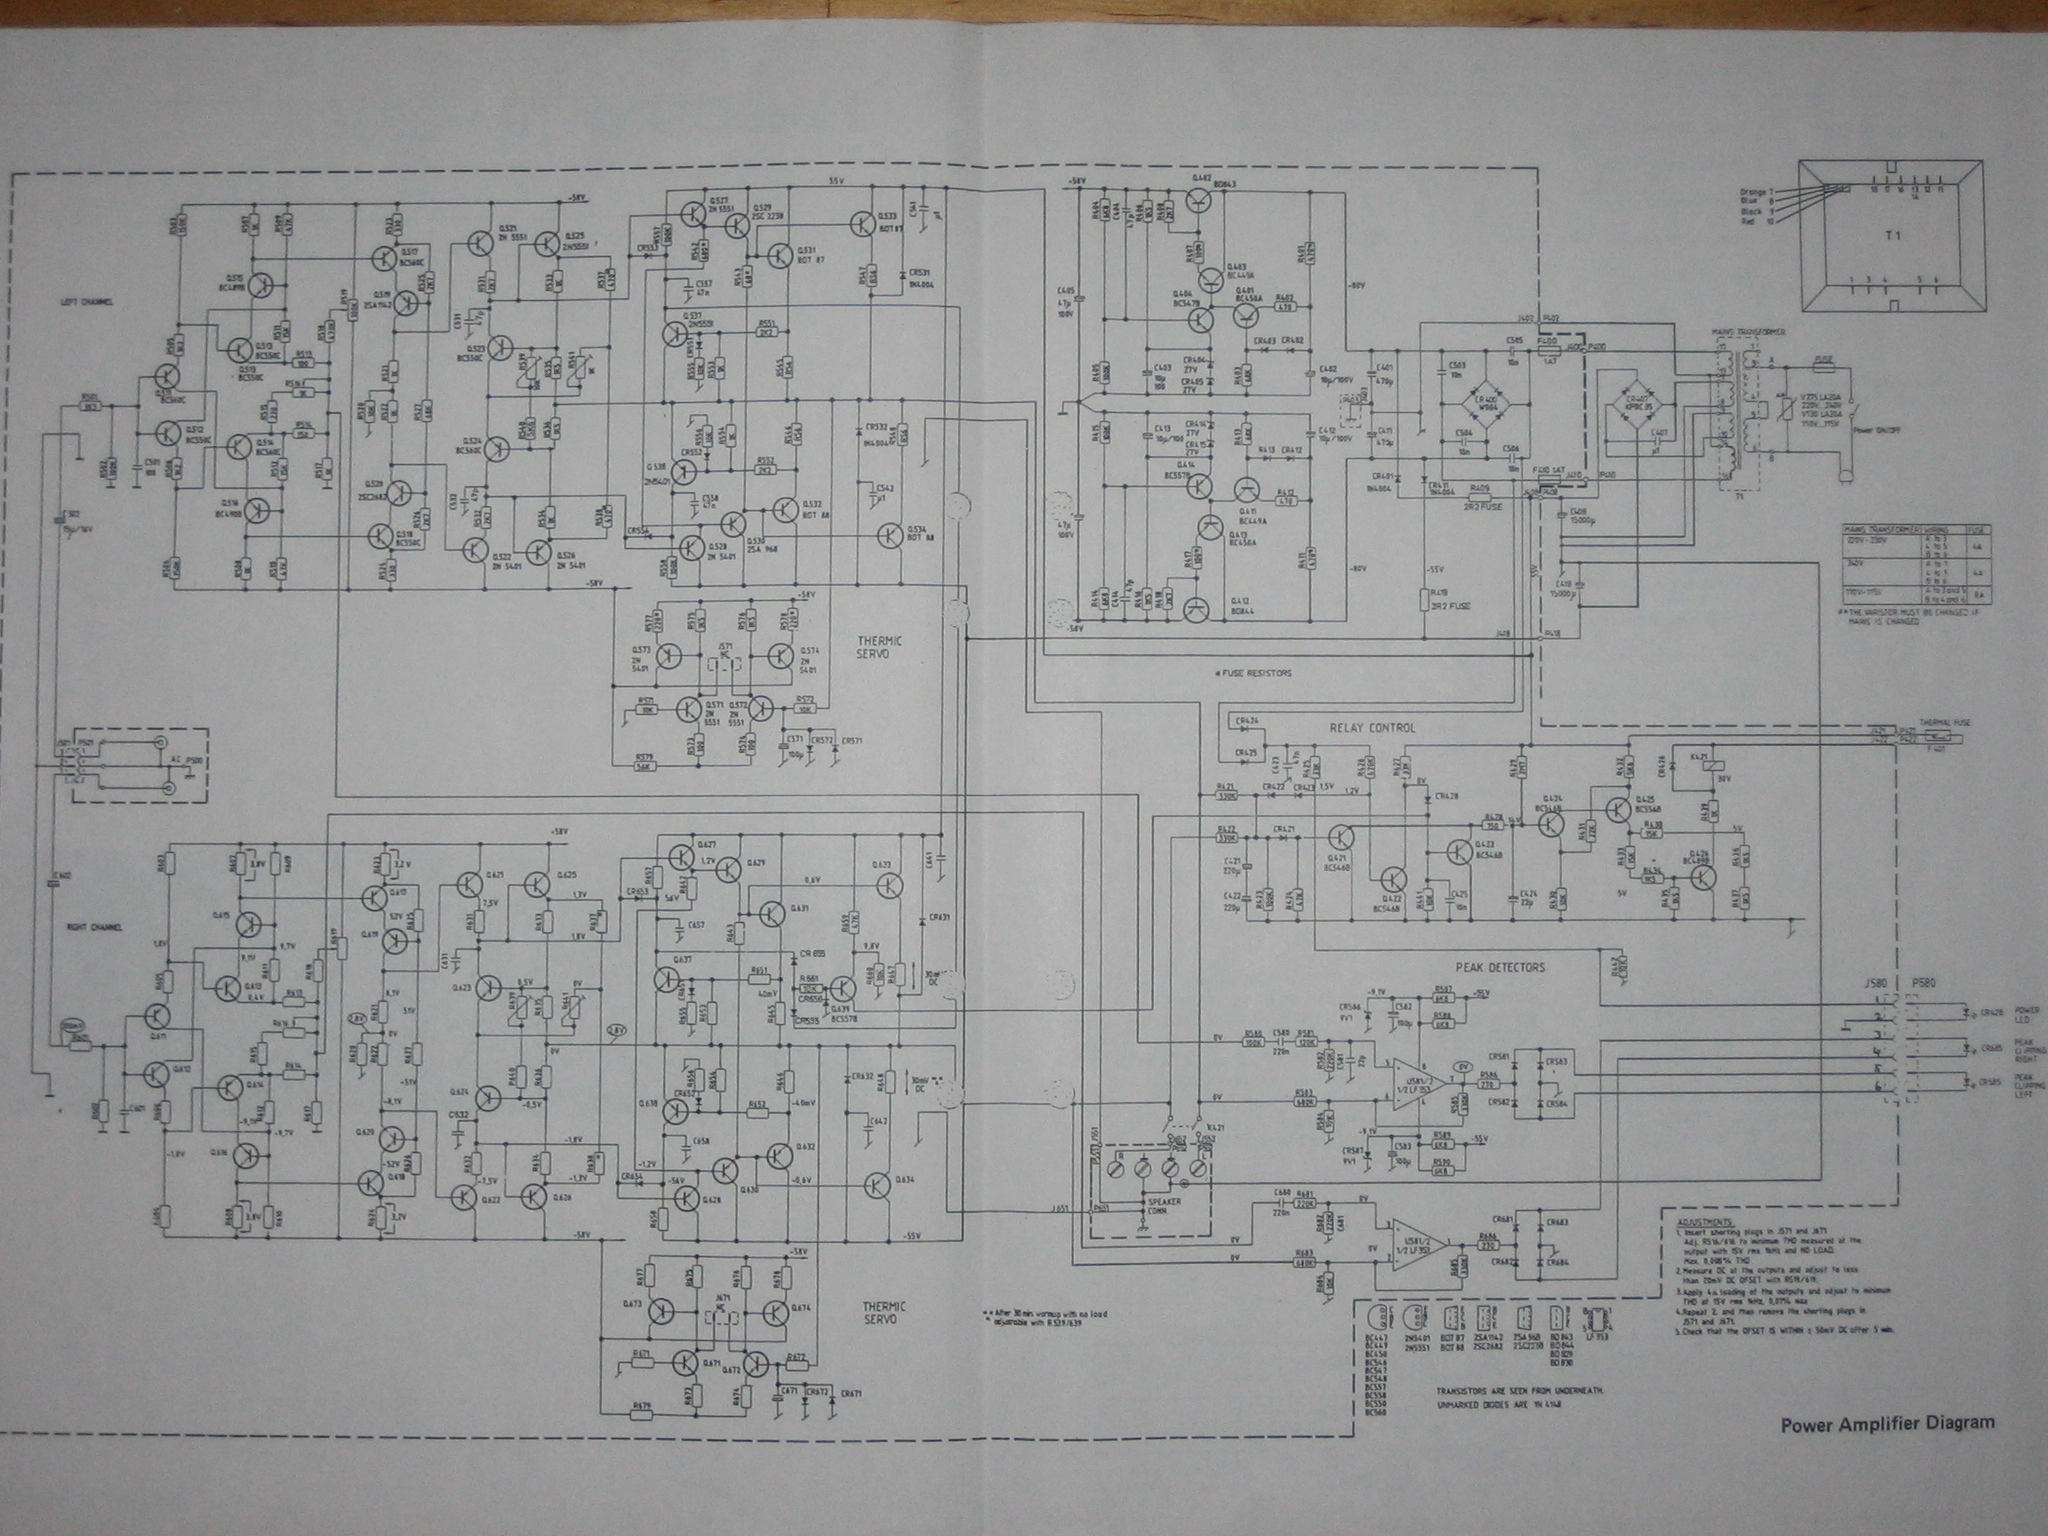 Index Of Tandberg Cat 3034 Engine Wiring Diagram 01 Feb 2011 0032 14m Tpa 4036 Ompdf 20 2205 544k Revpdf 18 Oct 2009 1623 326k Tpr 3031a Bpdf 57k